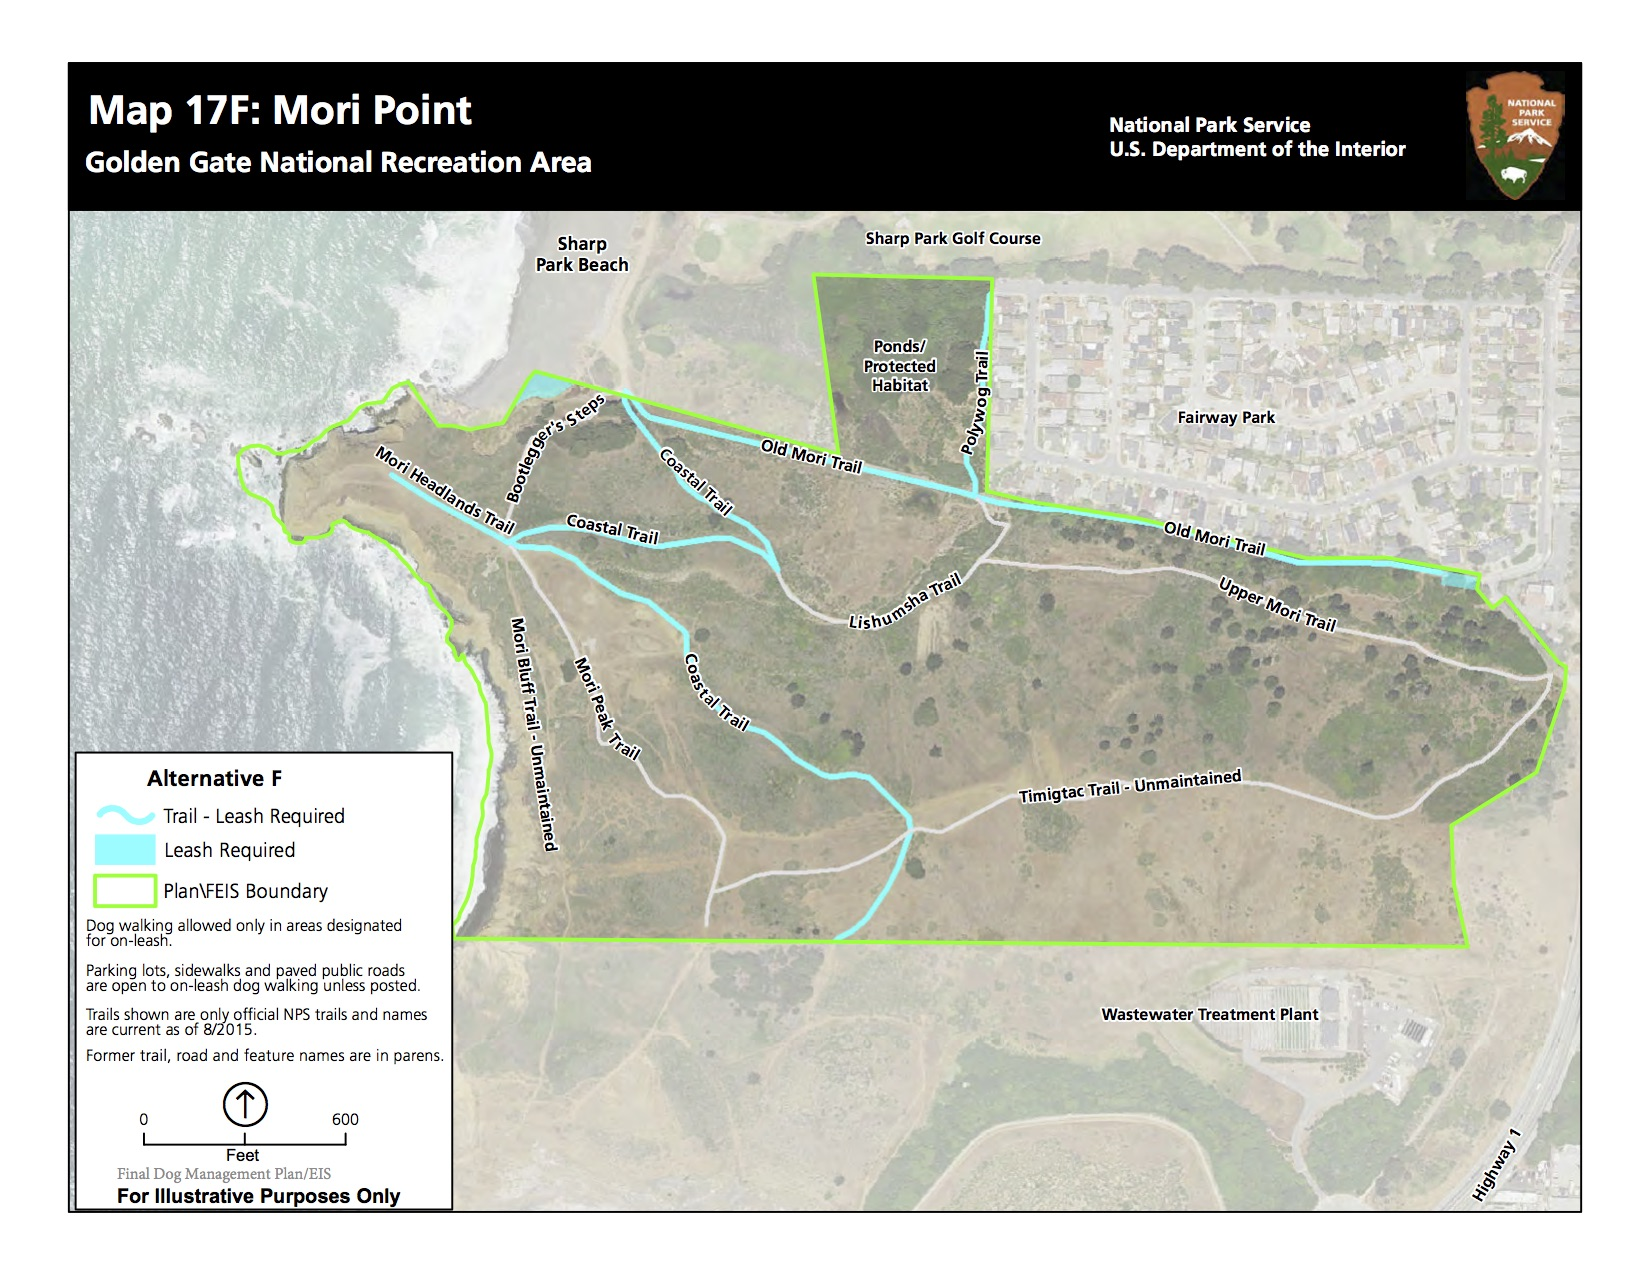 National park service - proposed CHANGES TO dog walking trails (dec. 2016 final EIS)